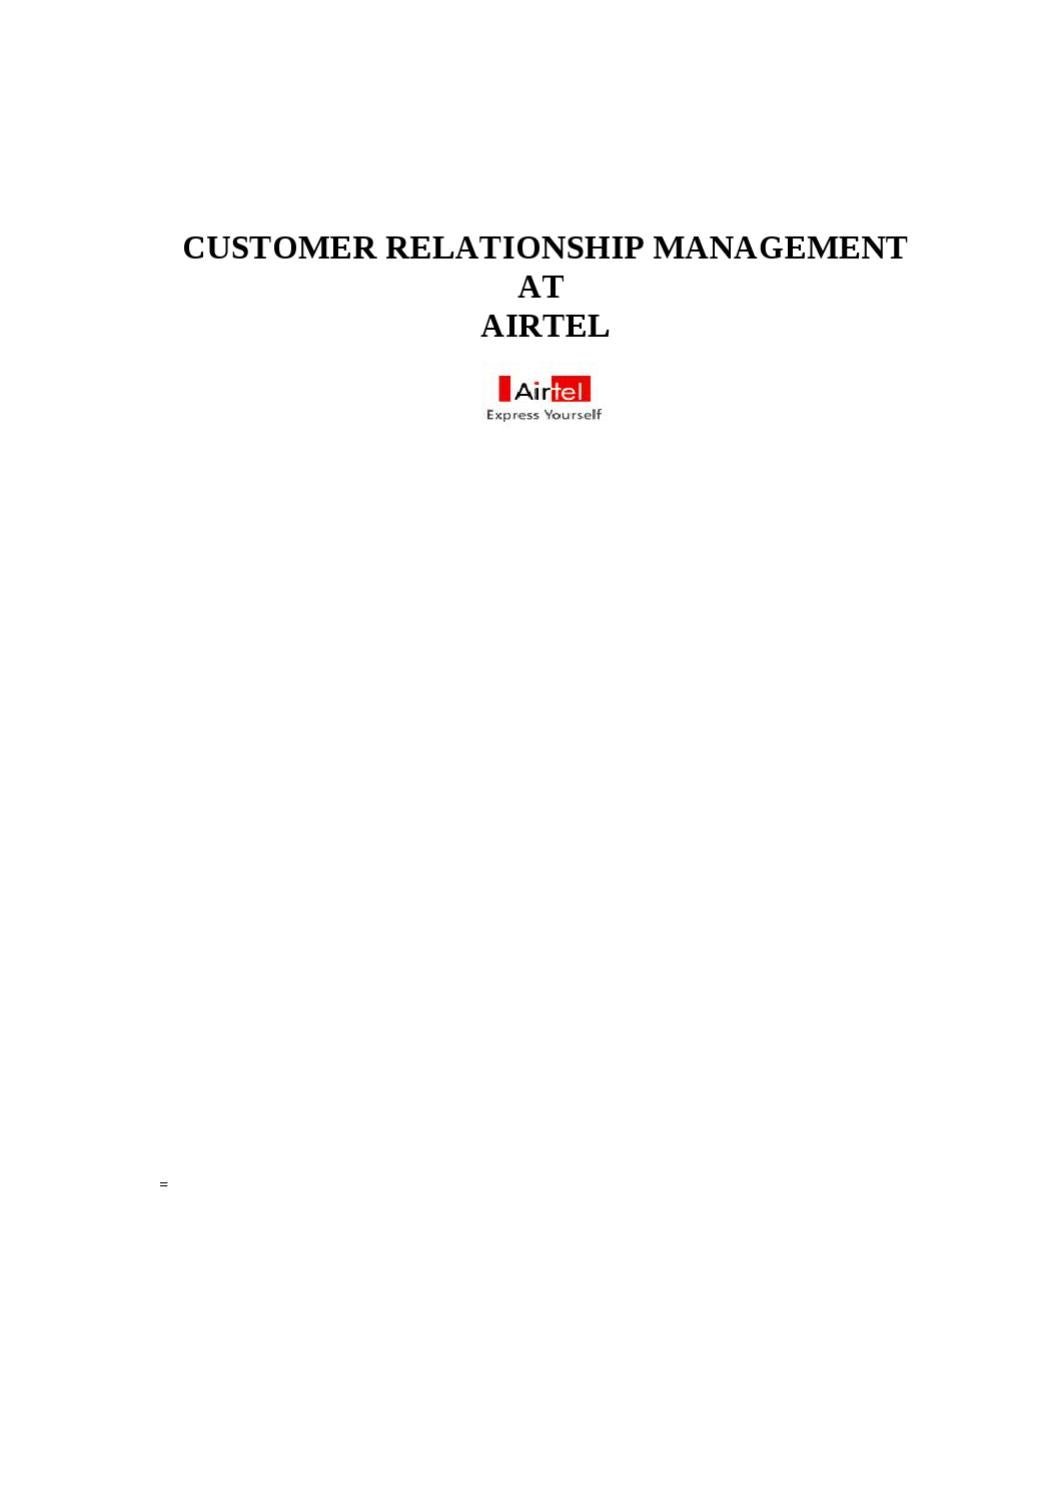 phd thesis on customer relationship management Gender discrimination research paper phd thesis customer relationship management research proposal examples dna technology research paper.